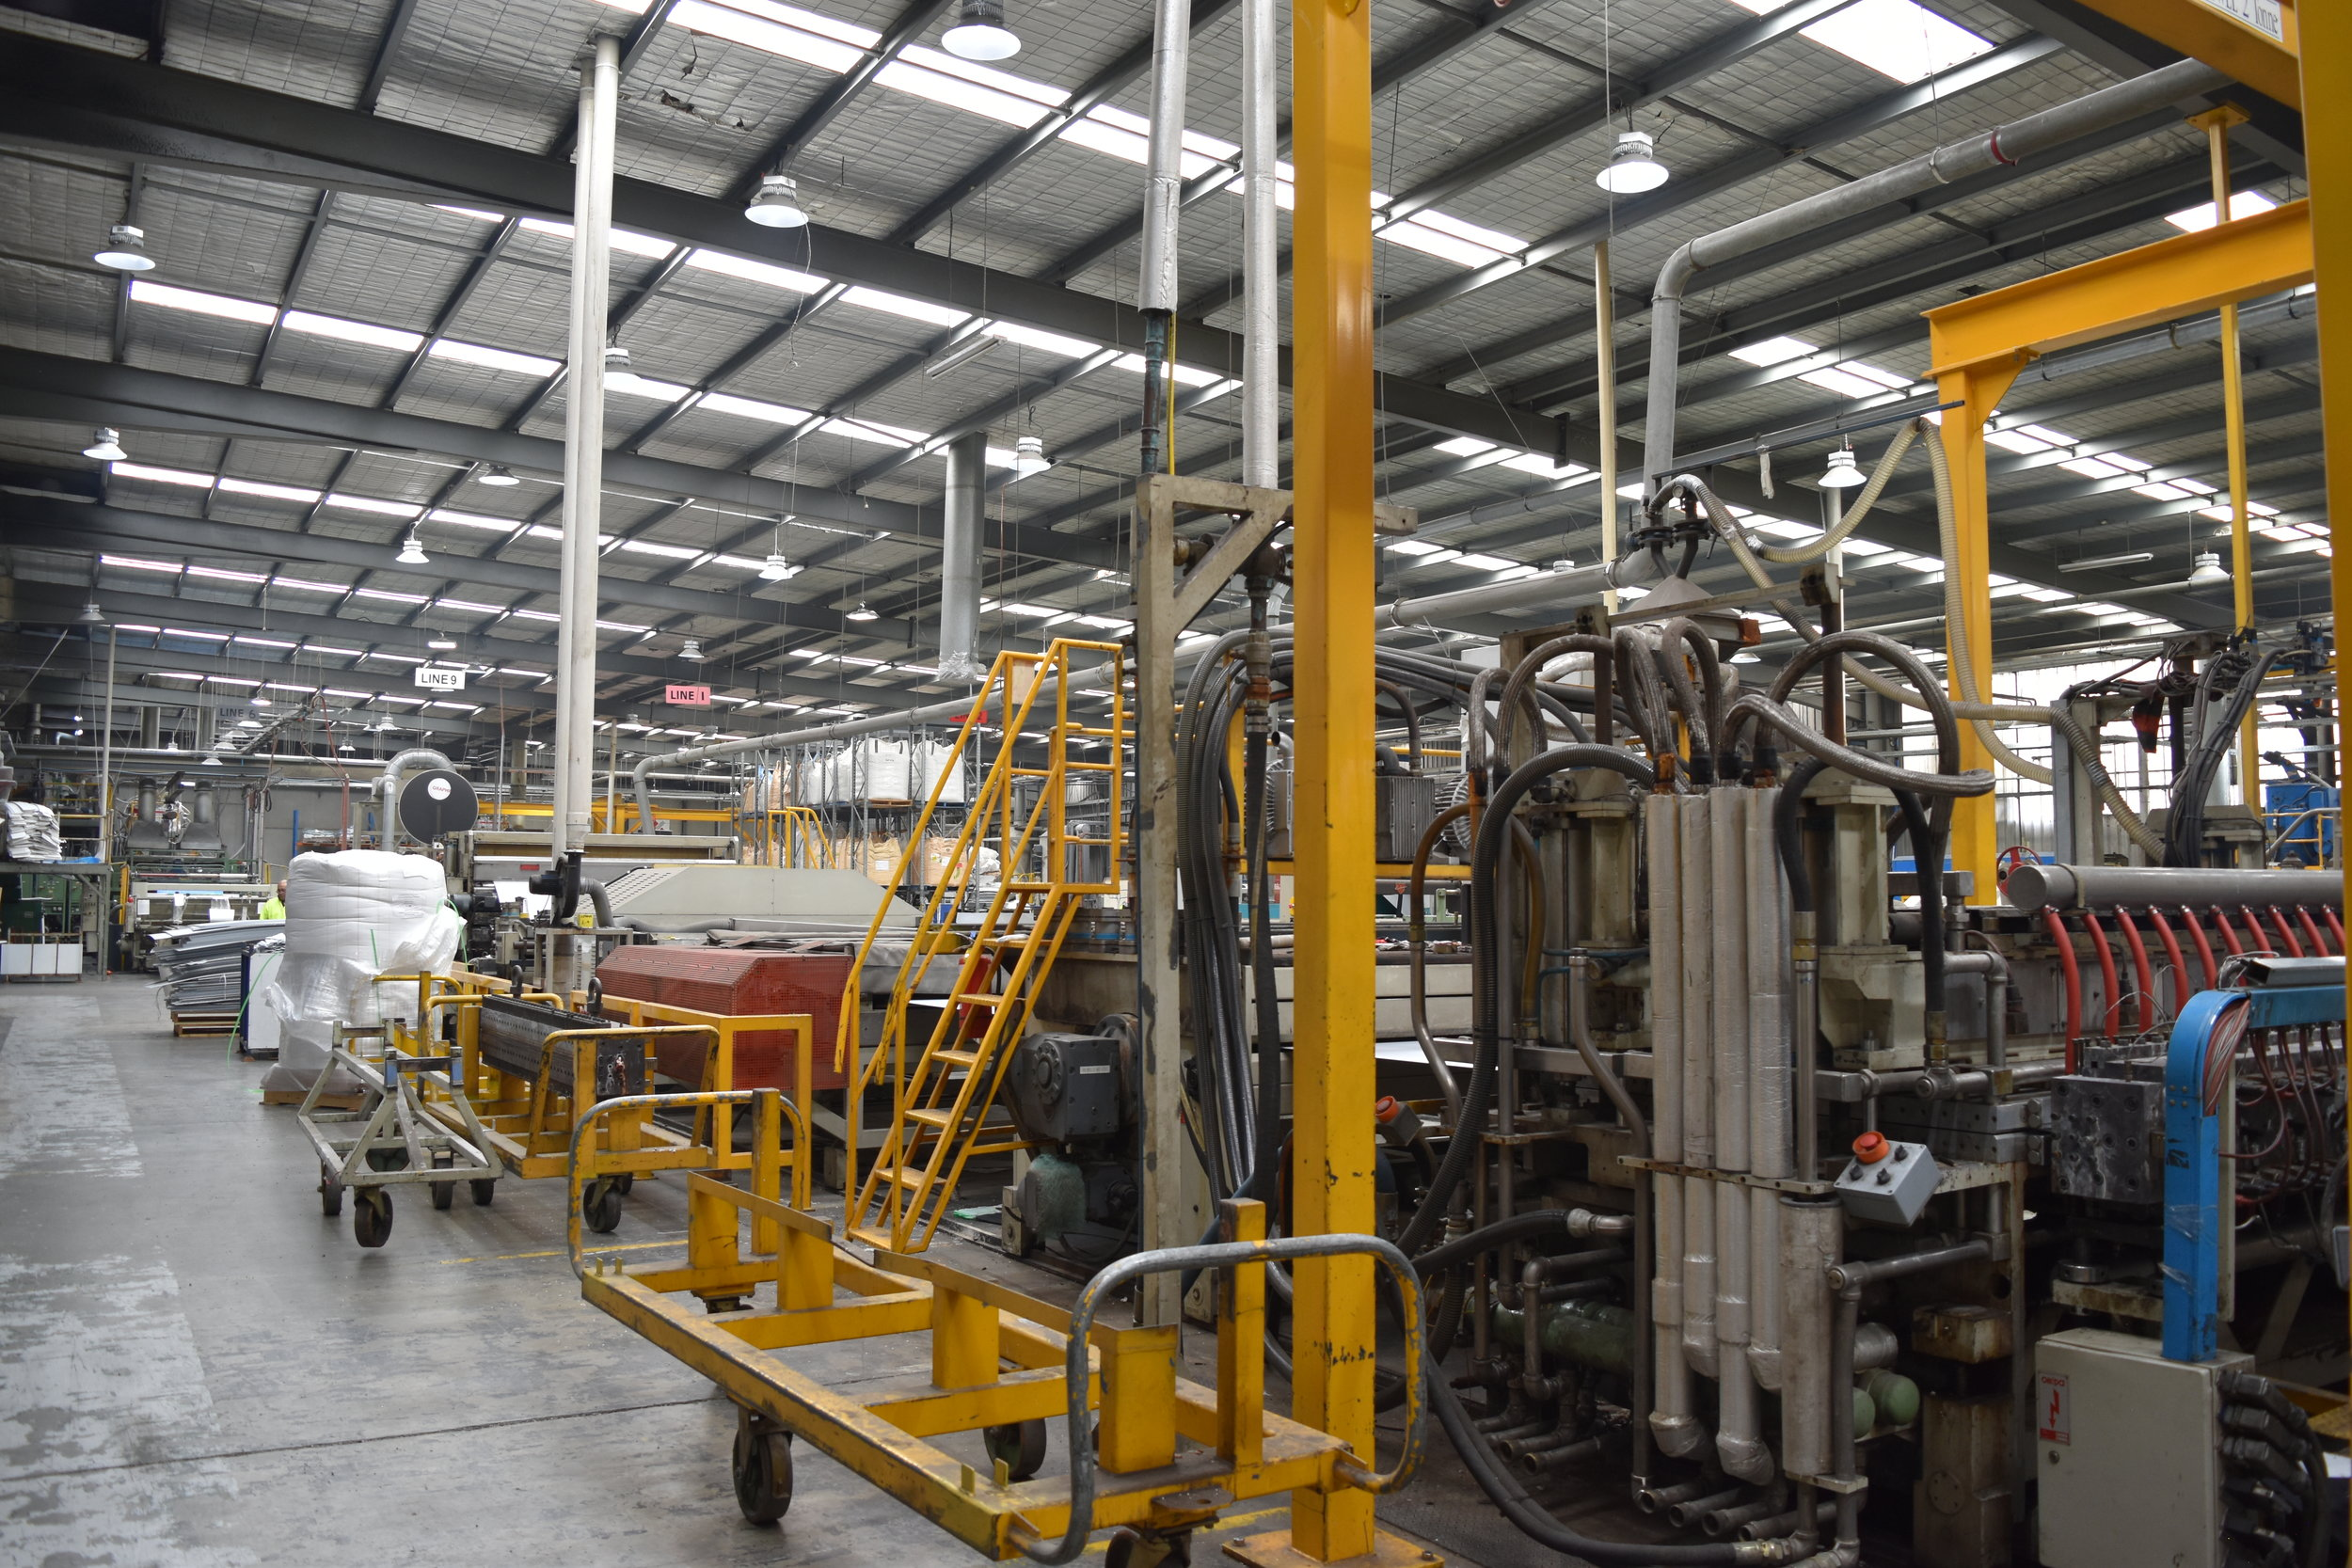 Corex Plastics Dandenong South factory has energy intense manufacturing processes.